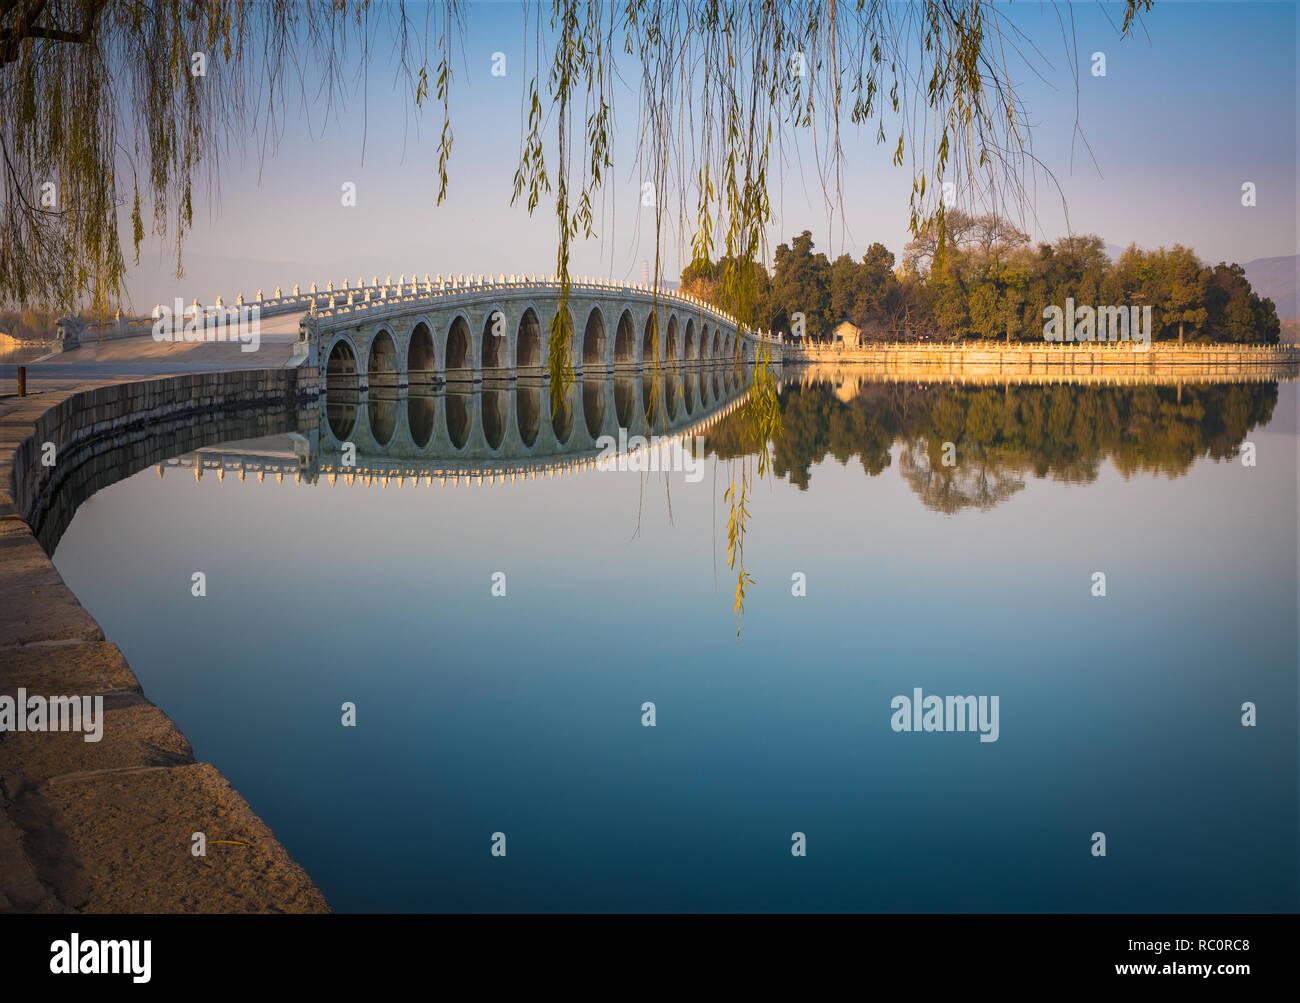 The Summer Palace (Chinese: 頤和園), is a vast ensemble of lakes, gardens and palaces in Beijing. Stock Photo